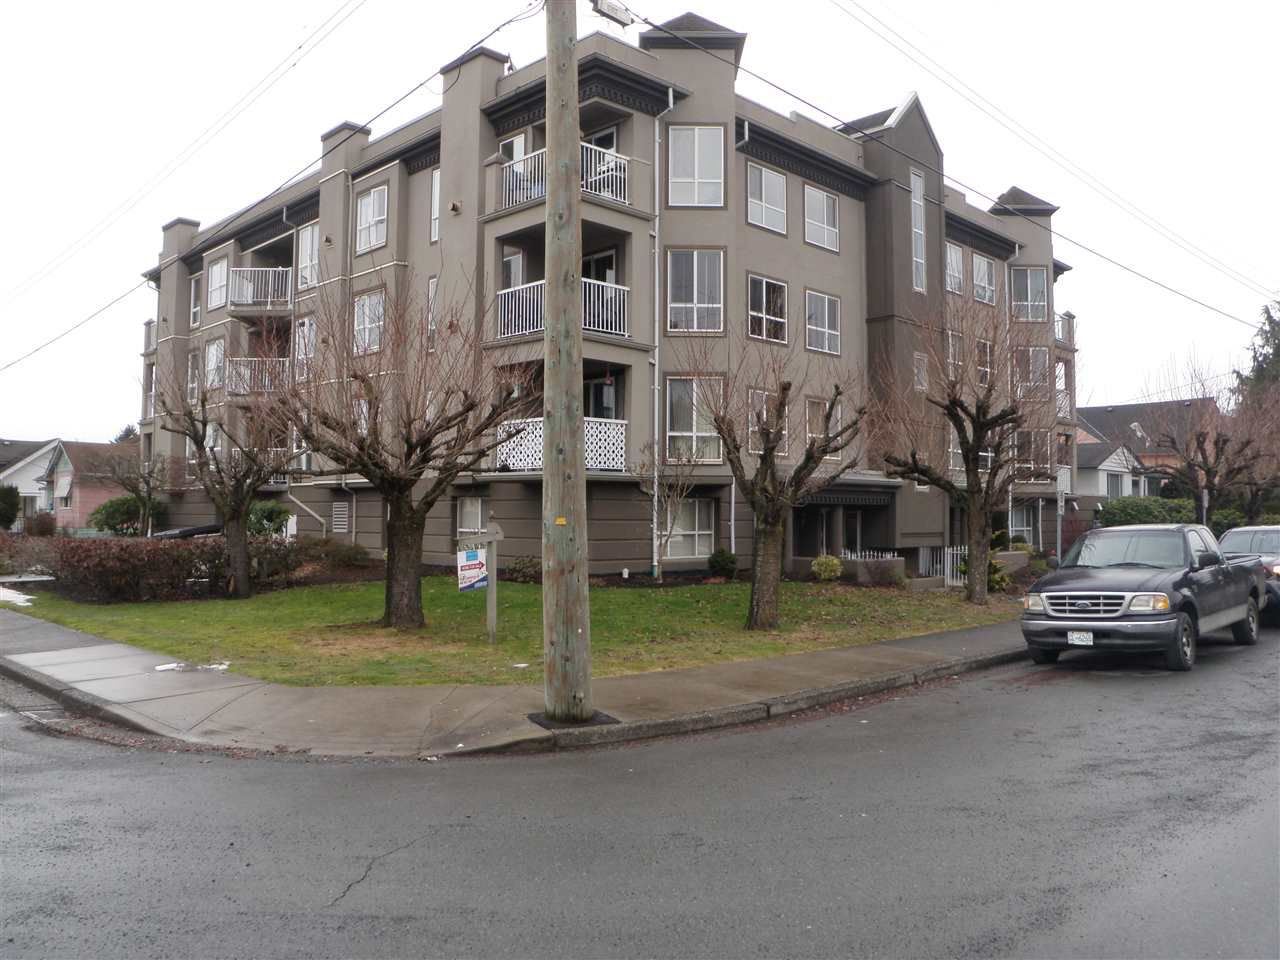 """Main Photo: 204 45773 VICTORIA Avenue in Chilliwack: Chilliwack N Yale-Well Condo for sale in """"VICTORIAN"""" : MLS®# R2134027"""